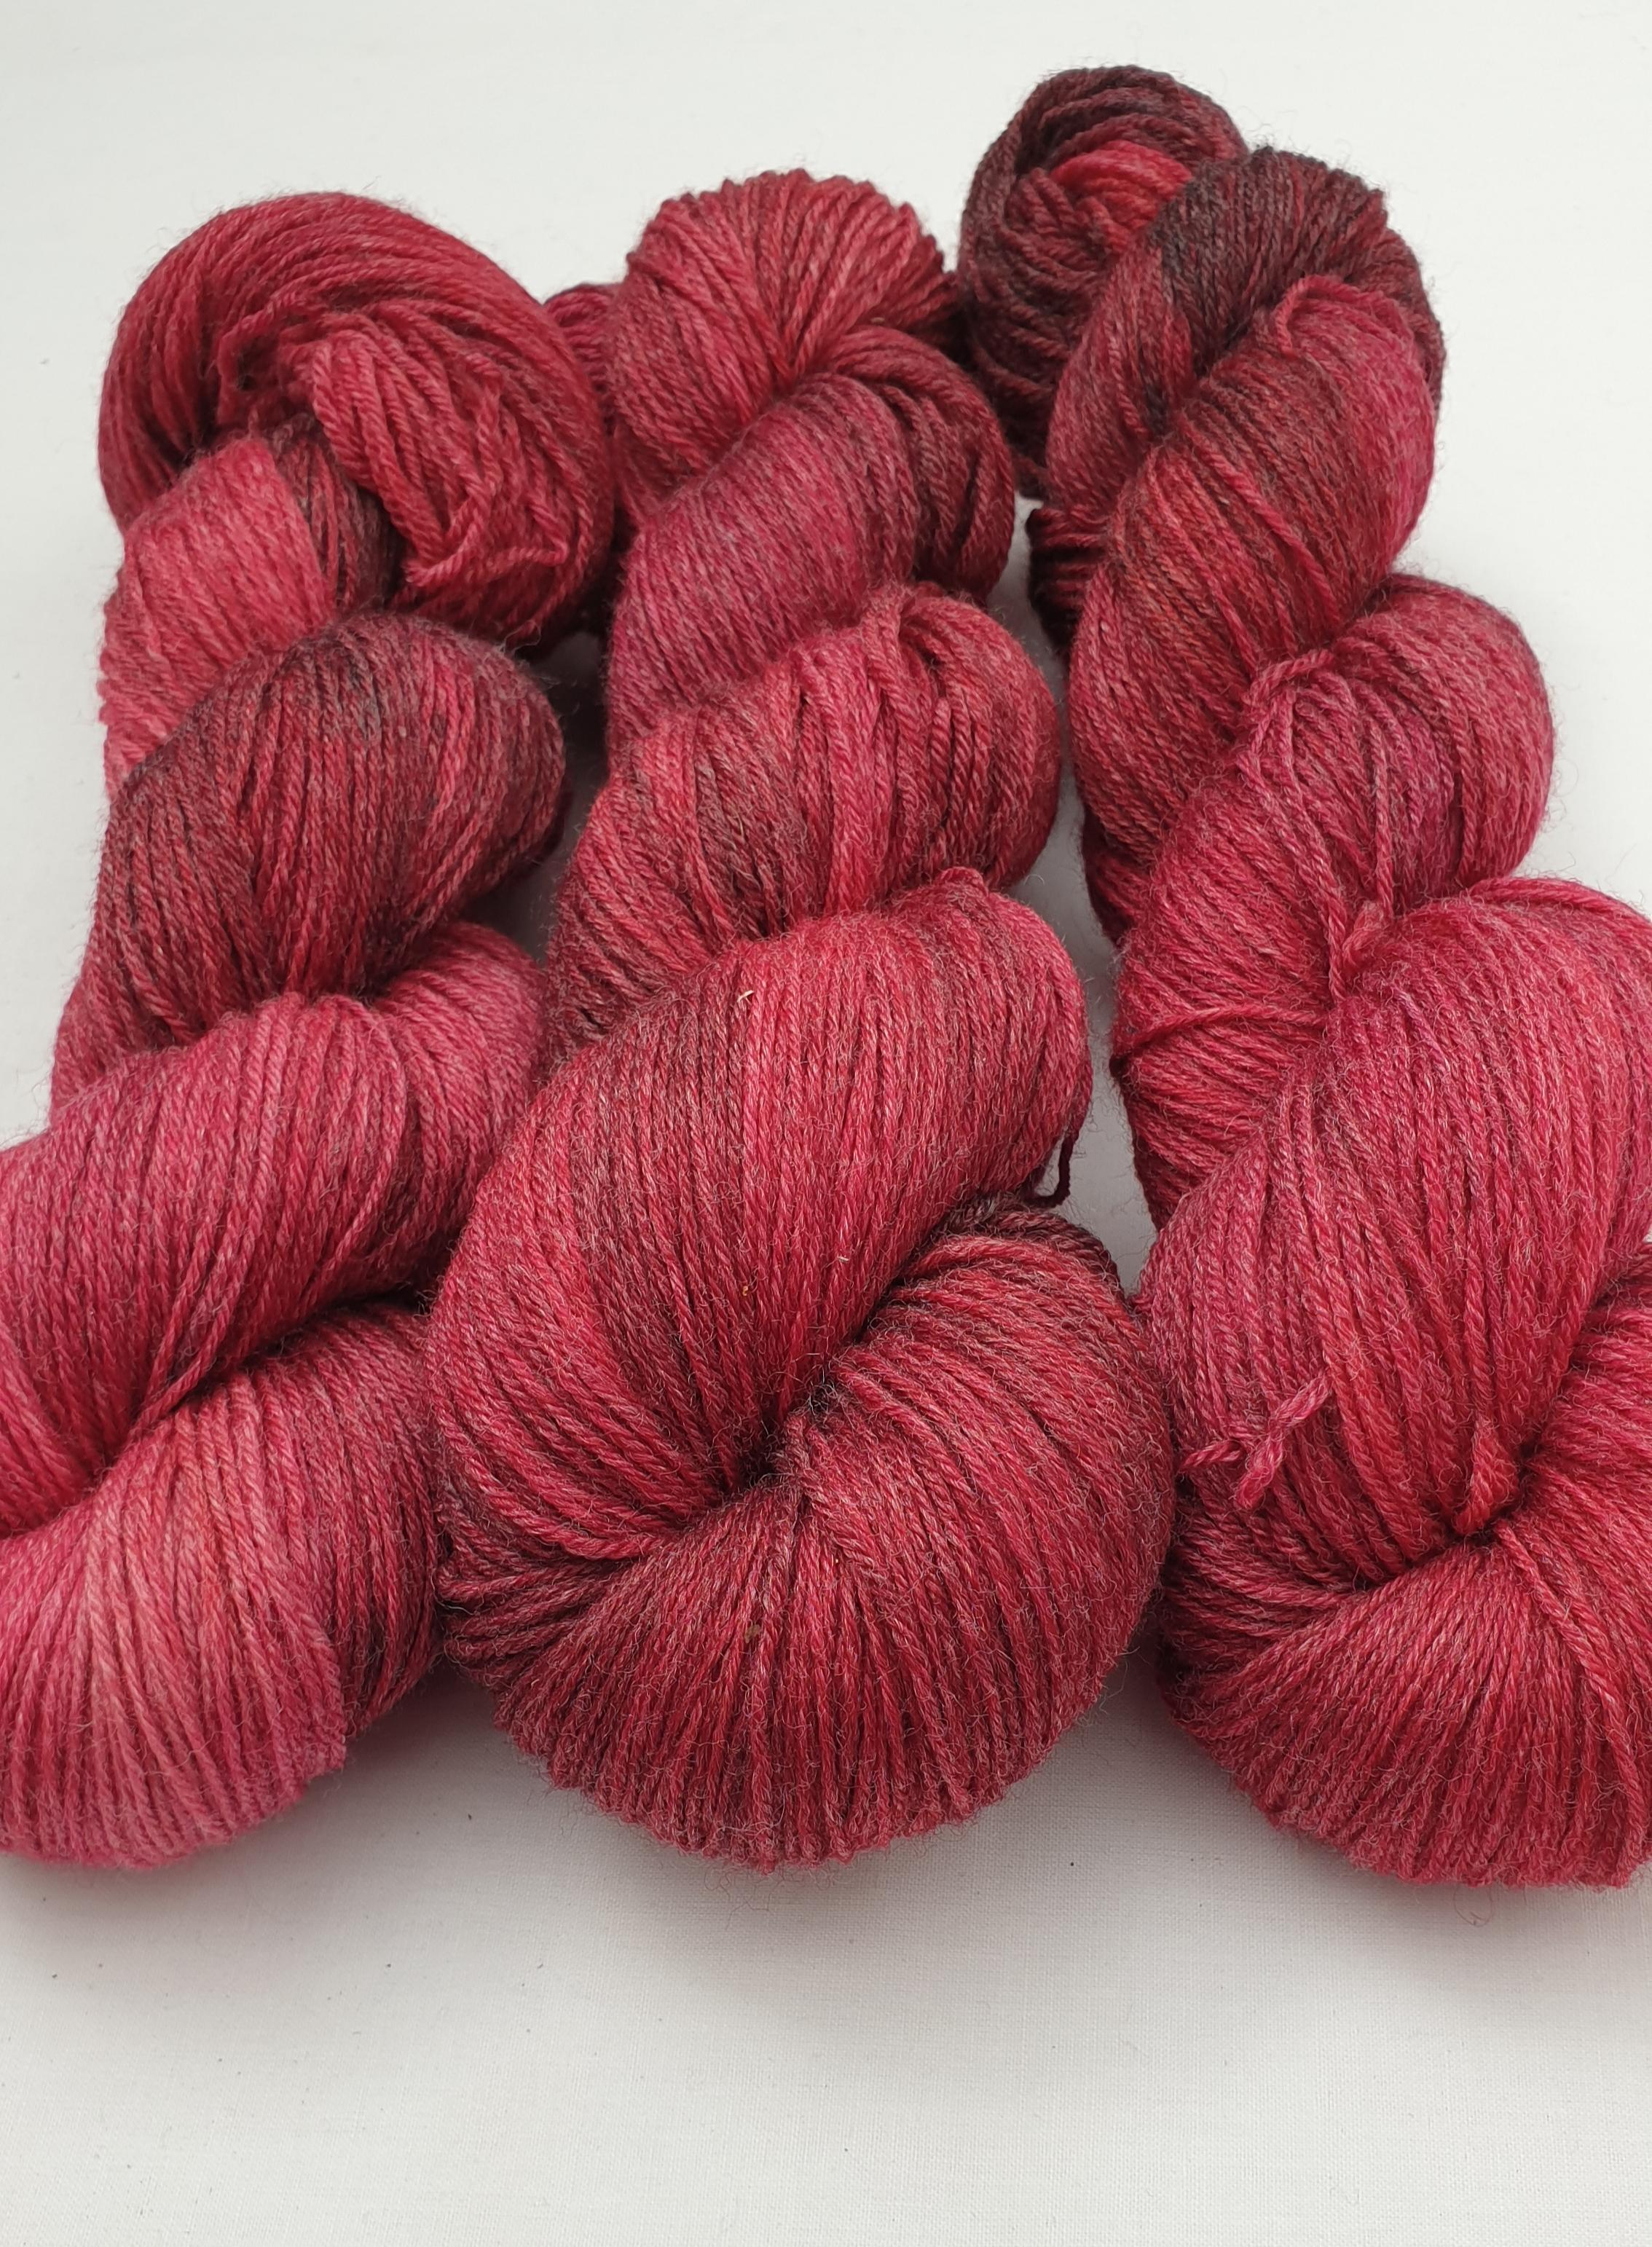 Sweet Red Apple. BFL Bamboo